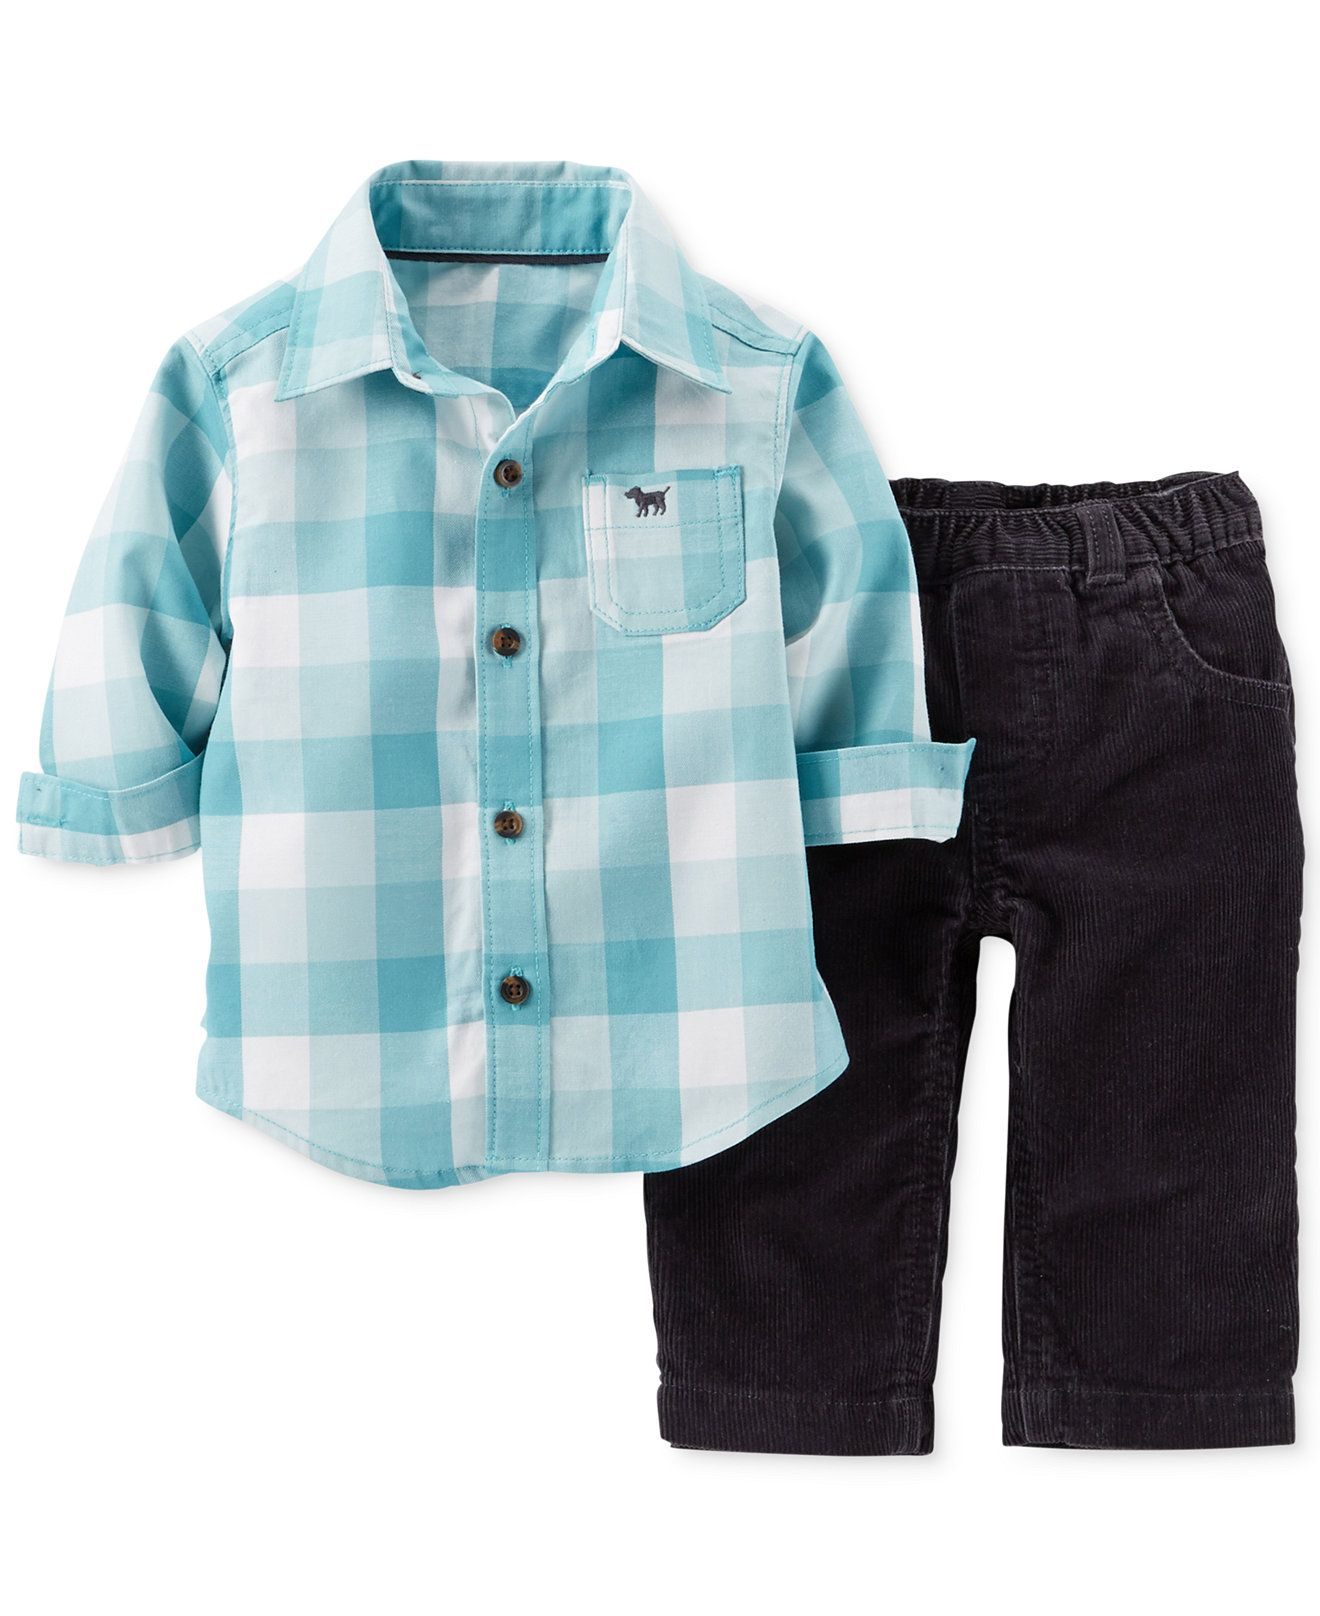 09e50a007 Carter s Baby Boys  2-Piece Flannel Shirt   Corduroy Pants Set ...